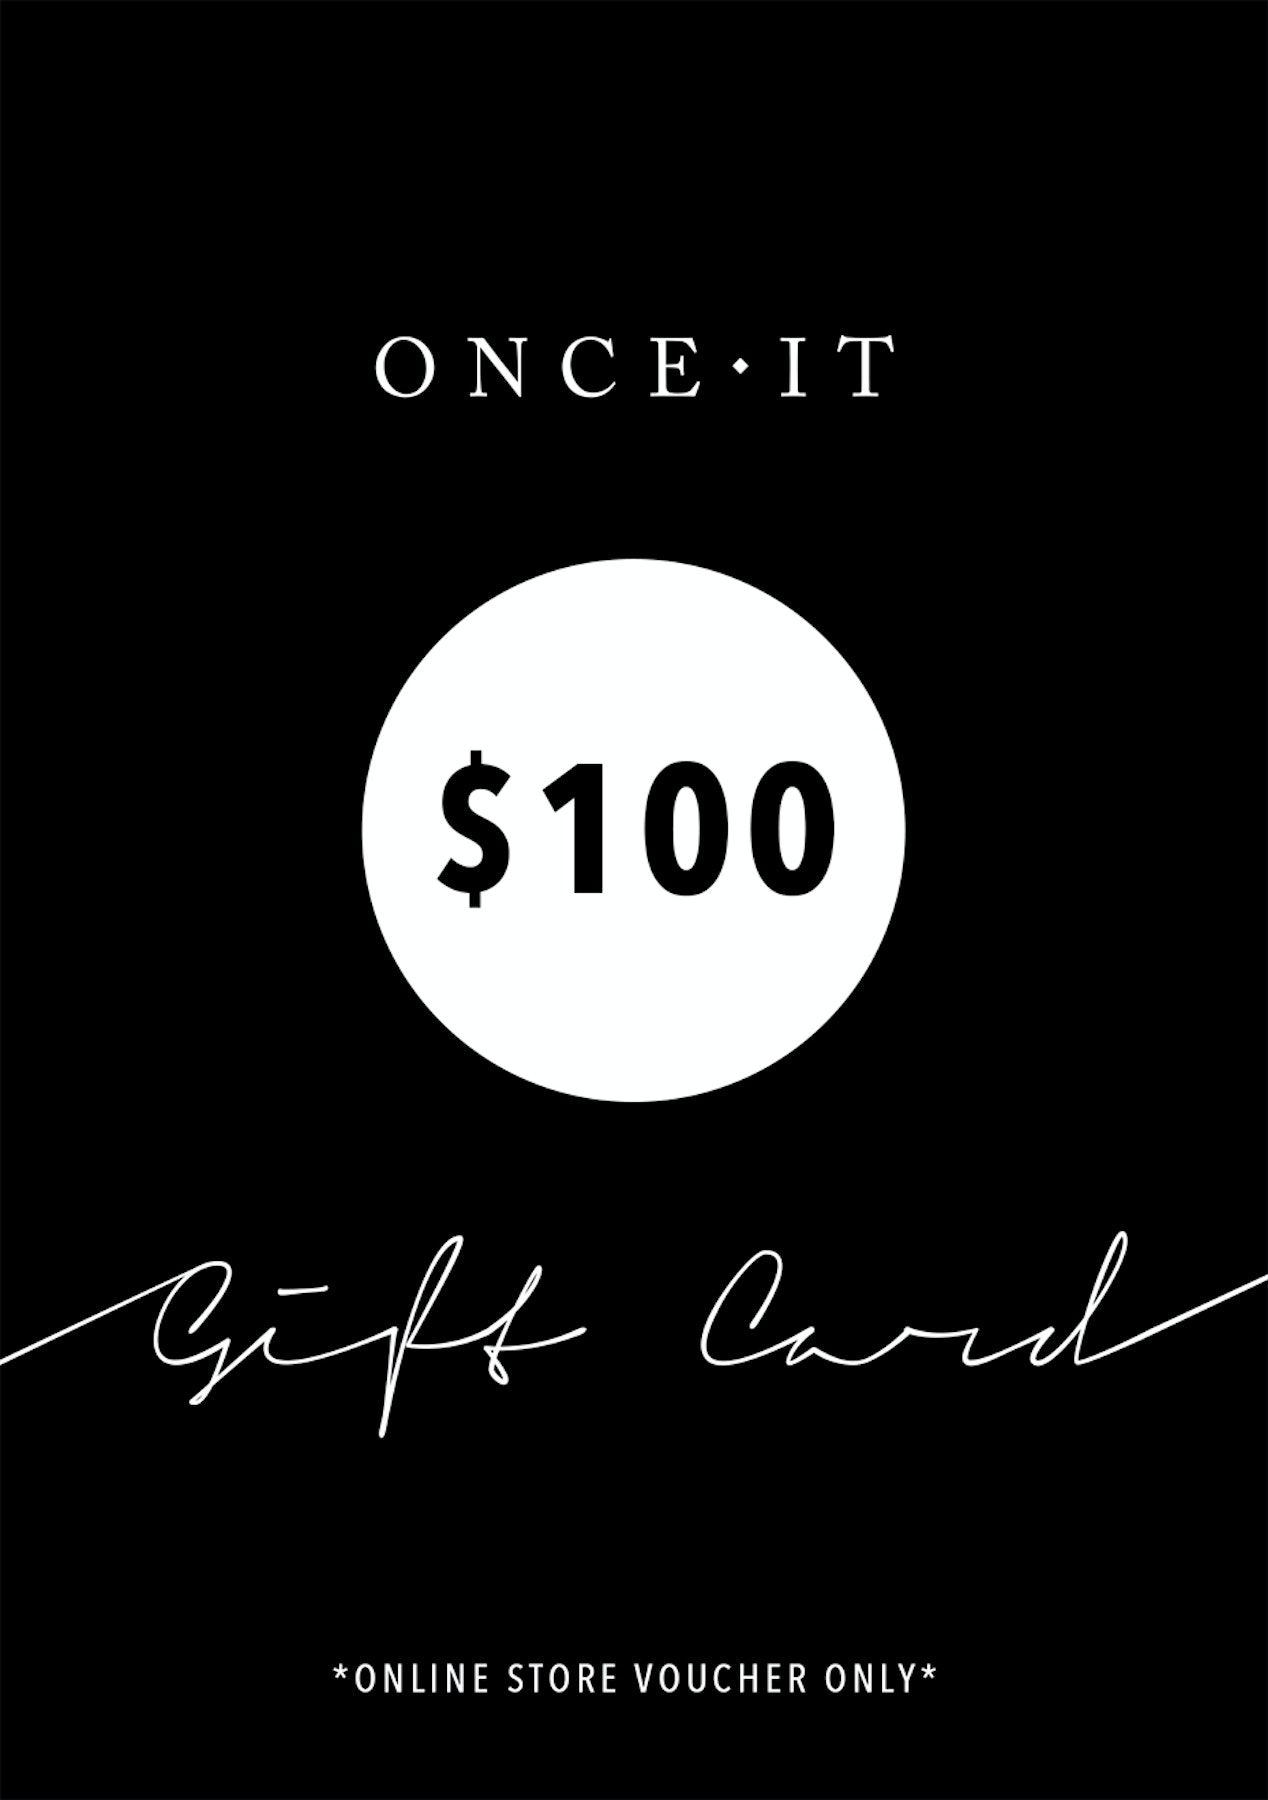 Onceit $100 Digital Gift Card